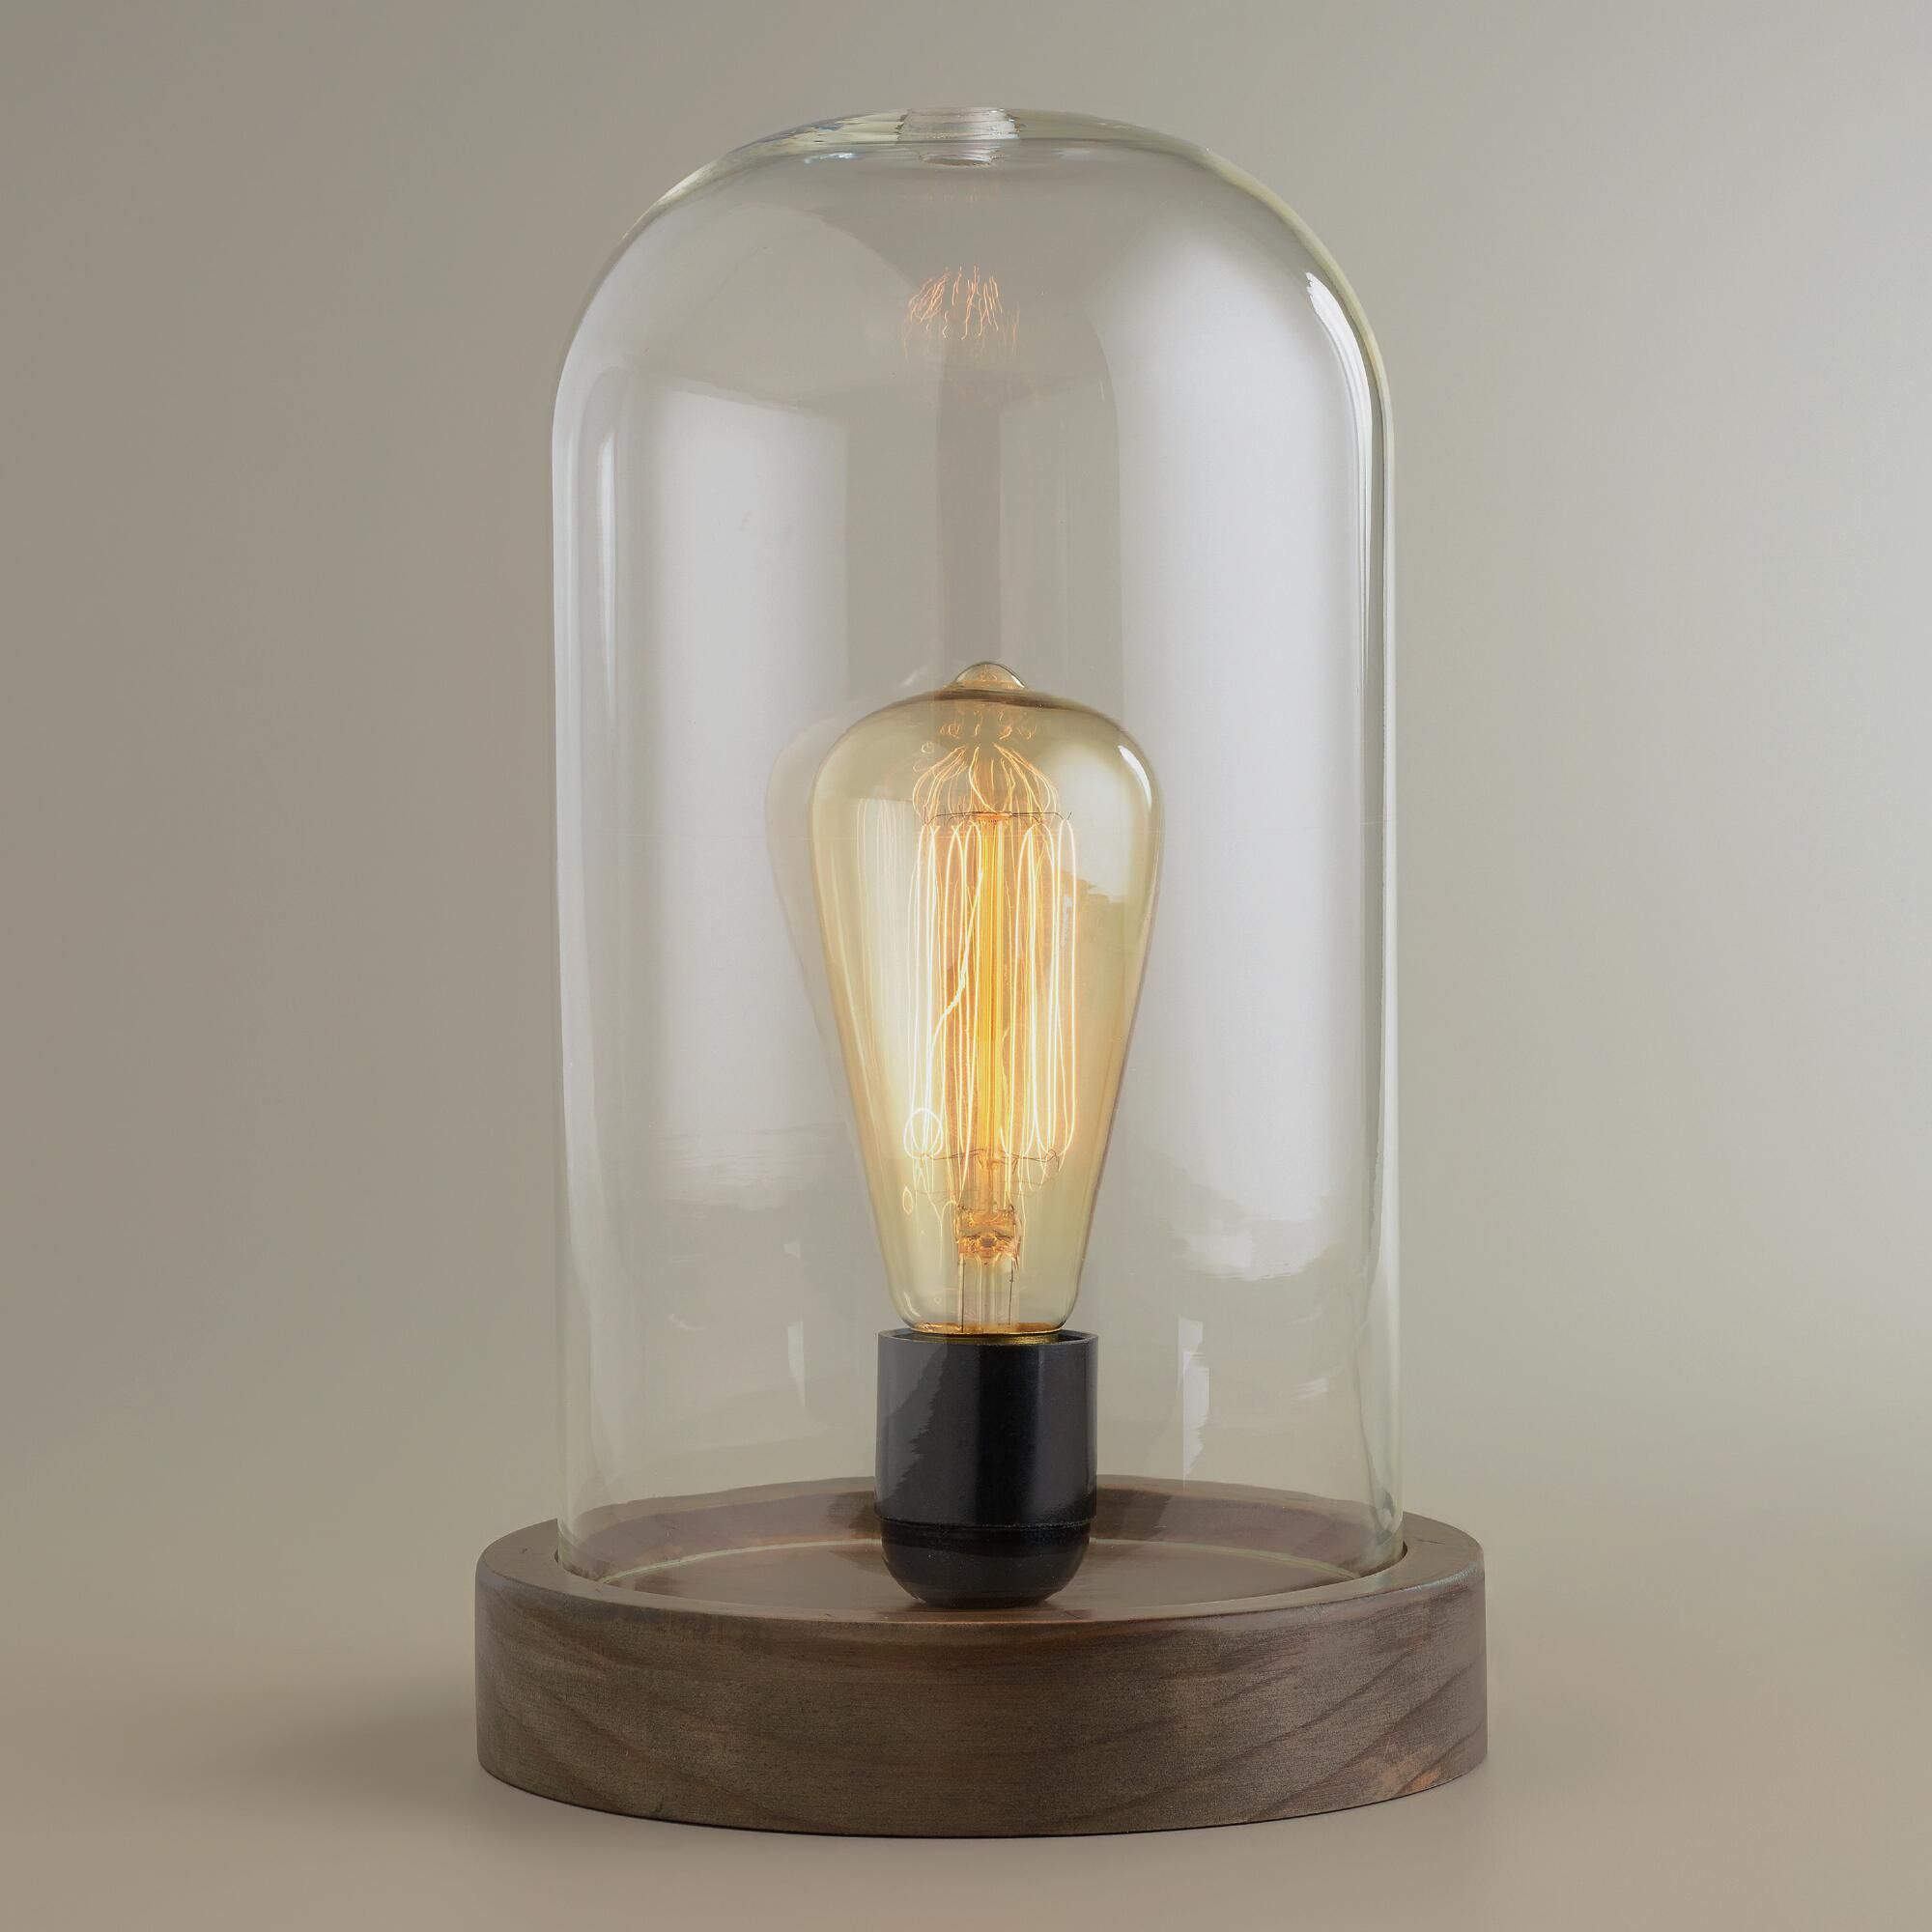 Crafted of glass with a wooden base our exclusive Edison Glass